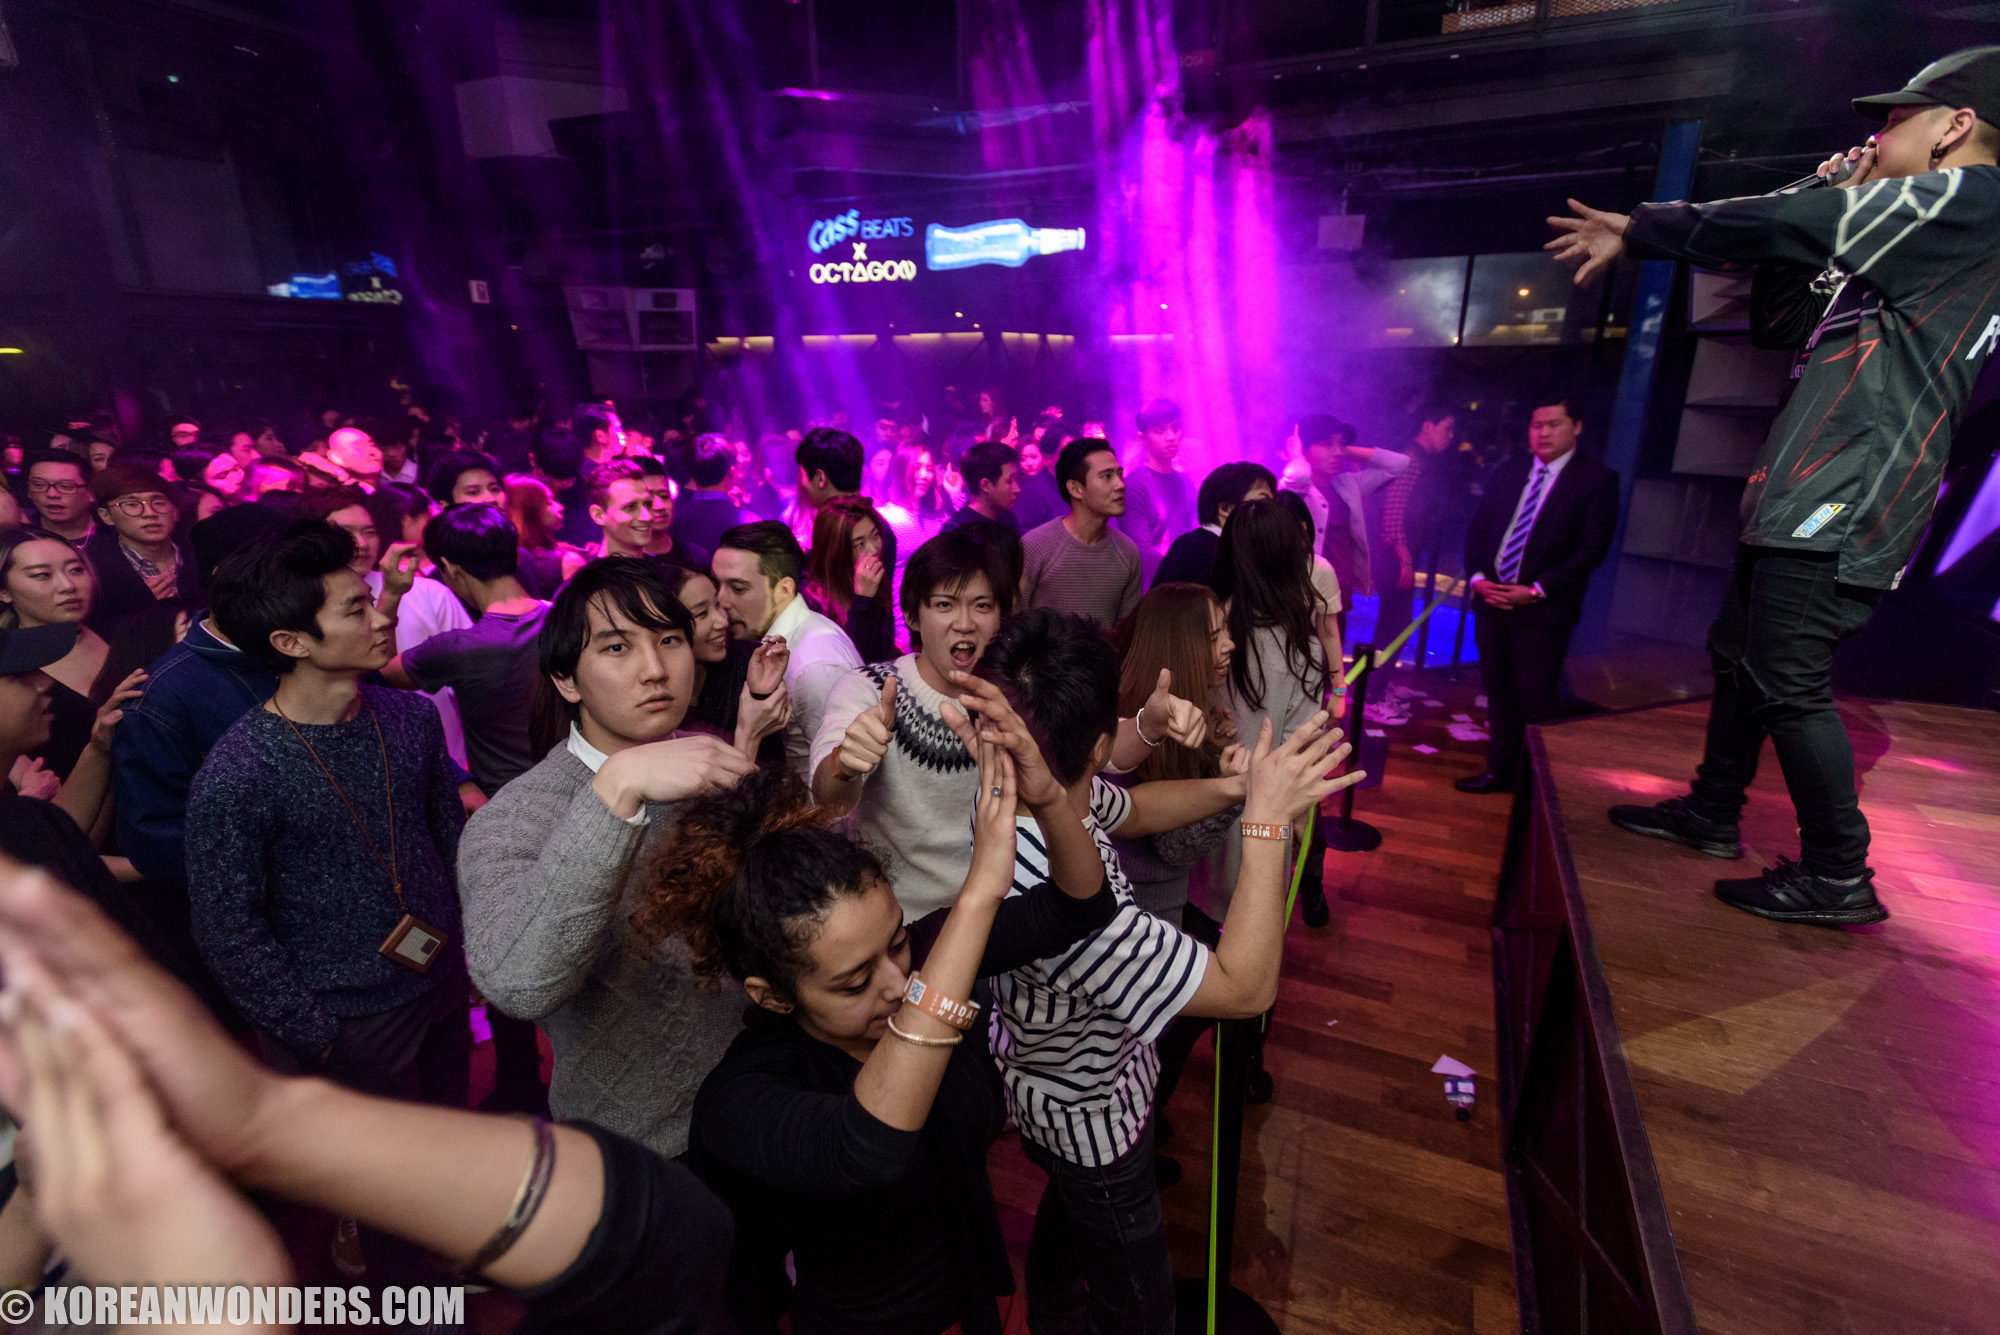 Party at Club Octagon - 2016.01.30 (Sat)